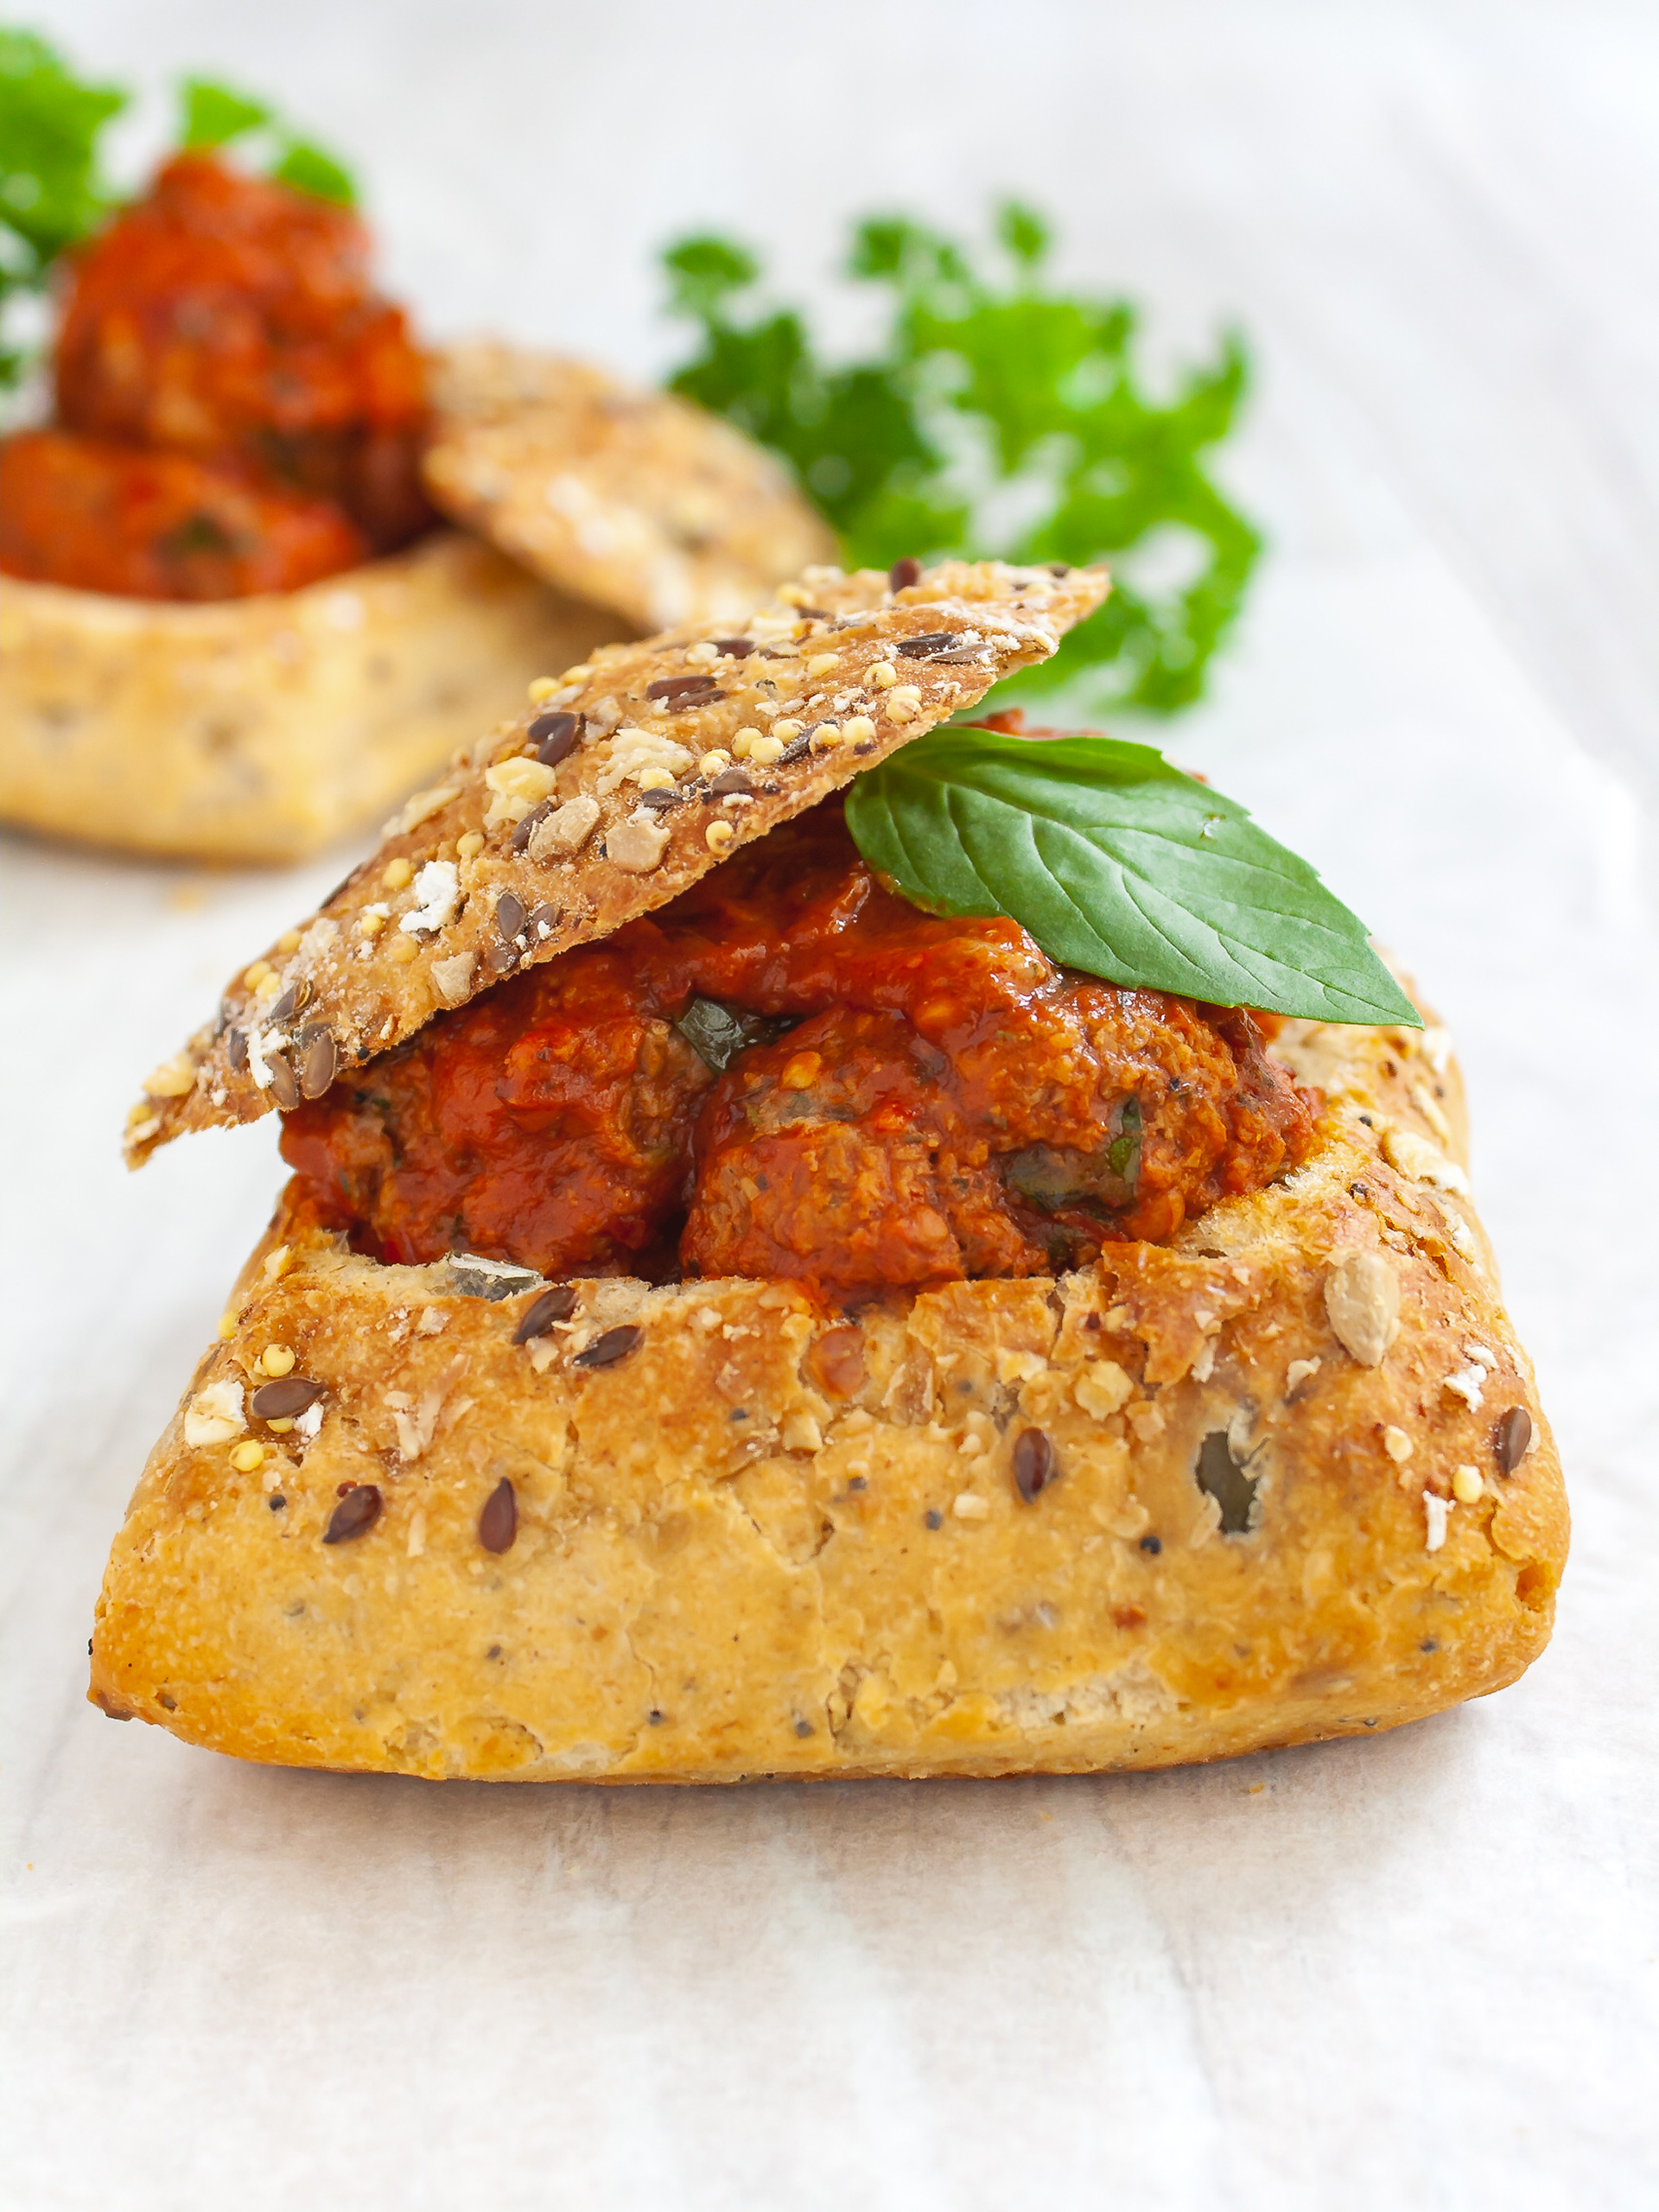 Gluten Free Dairy Free Egg Free Meatballs in Bread Bowl Preview